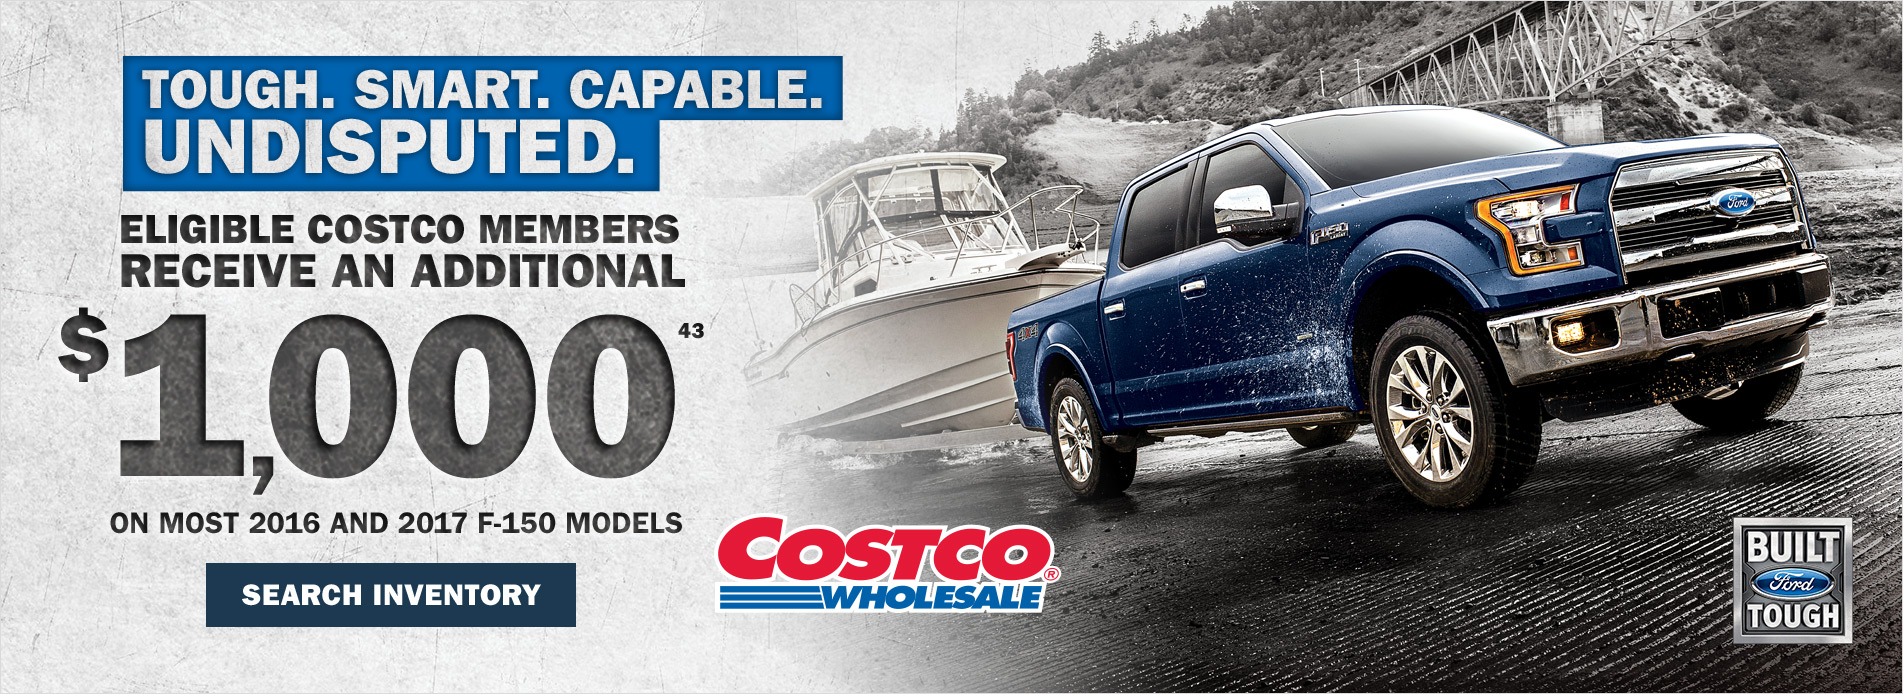 F-150 March OEM offer